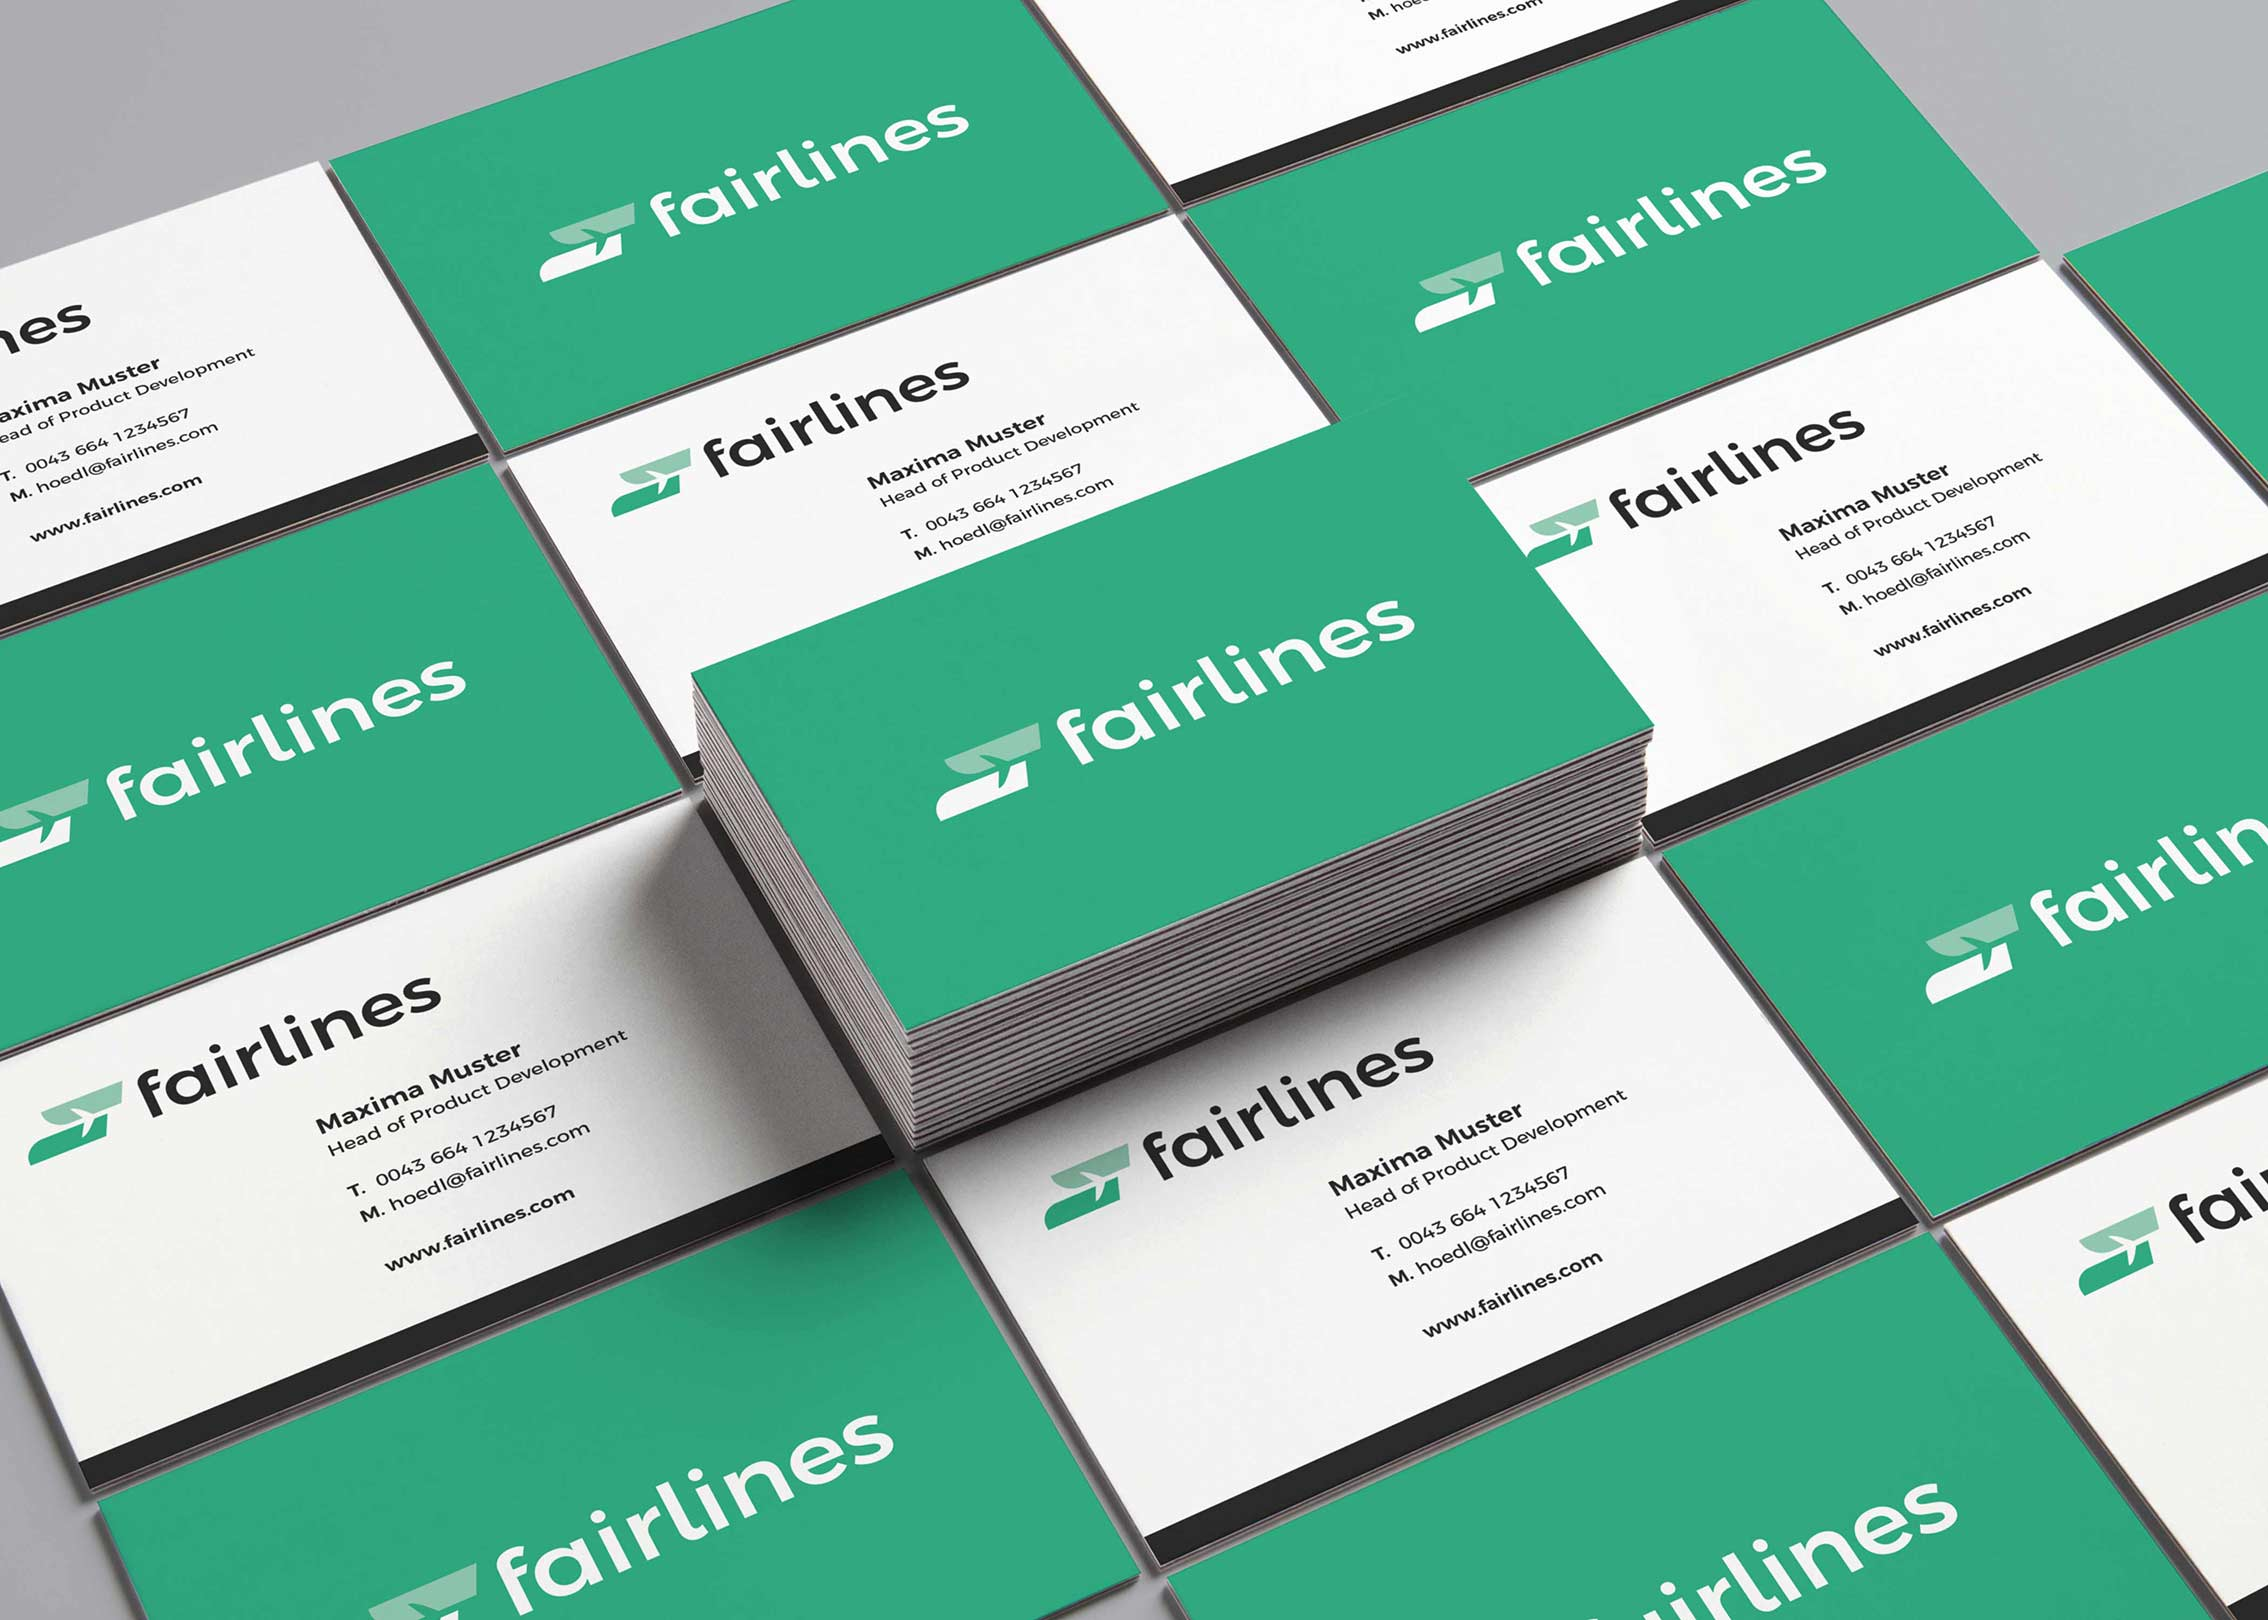 fairlines_businesscards